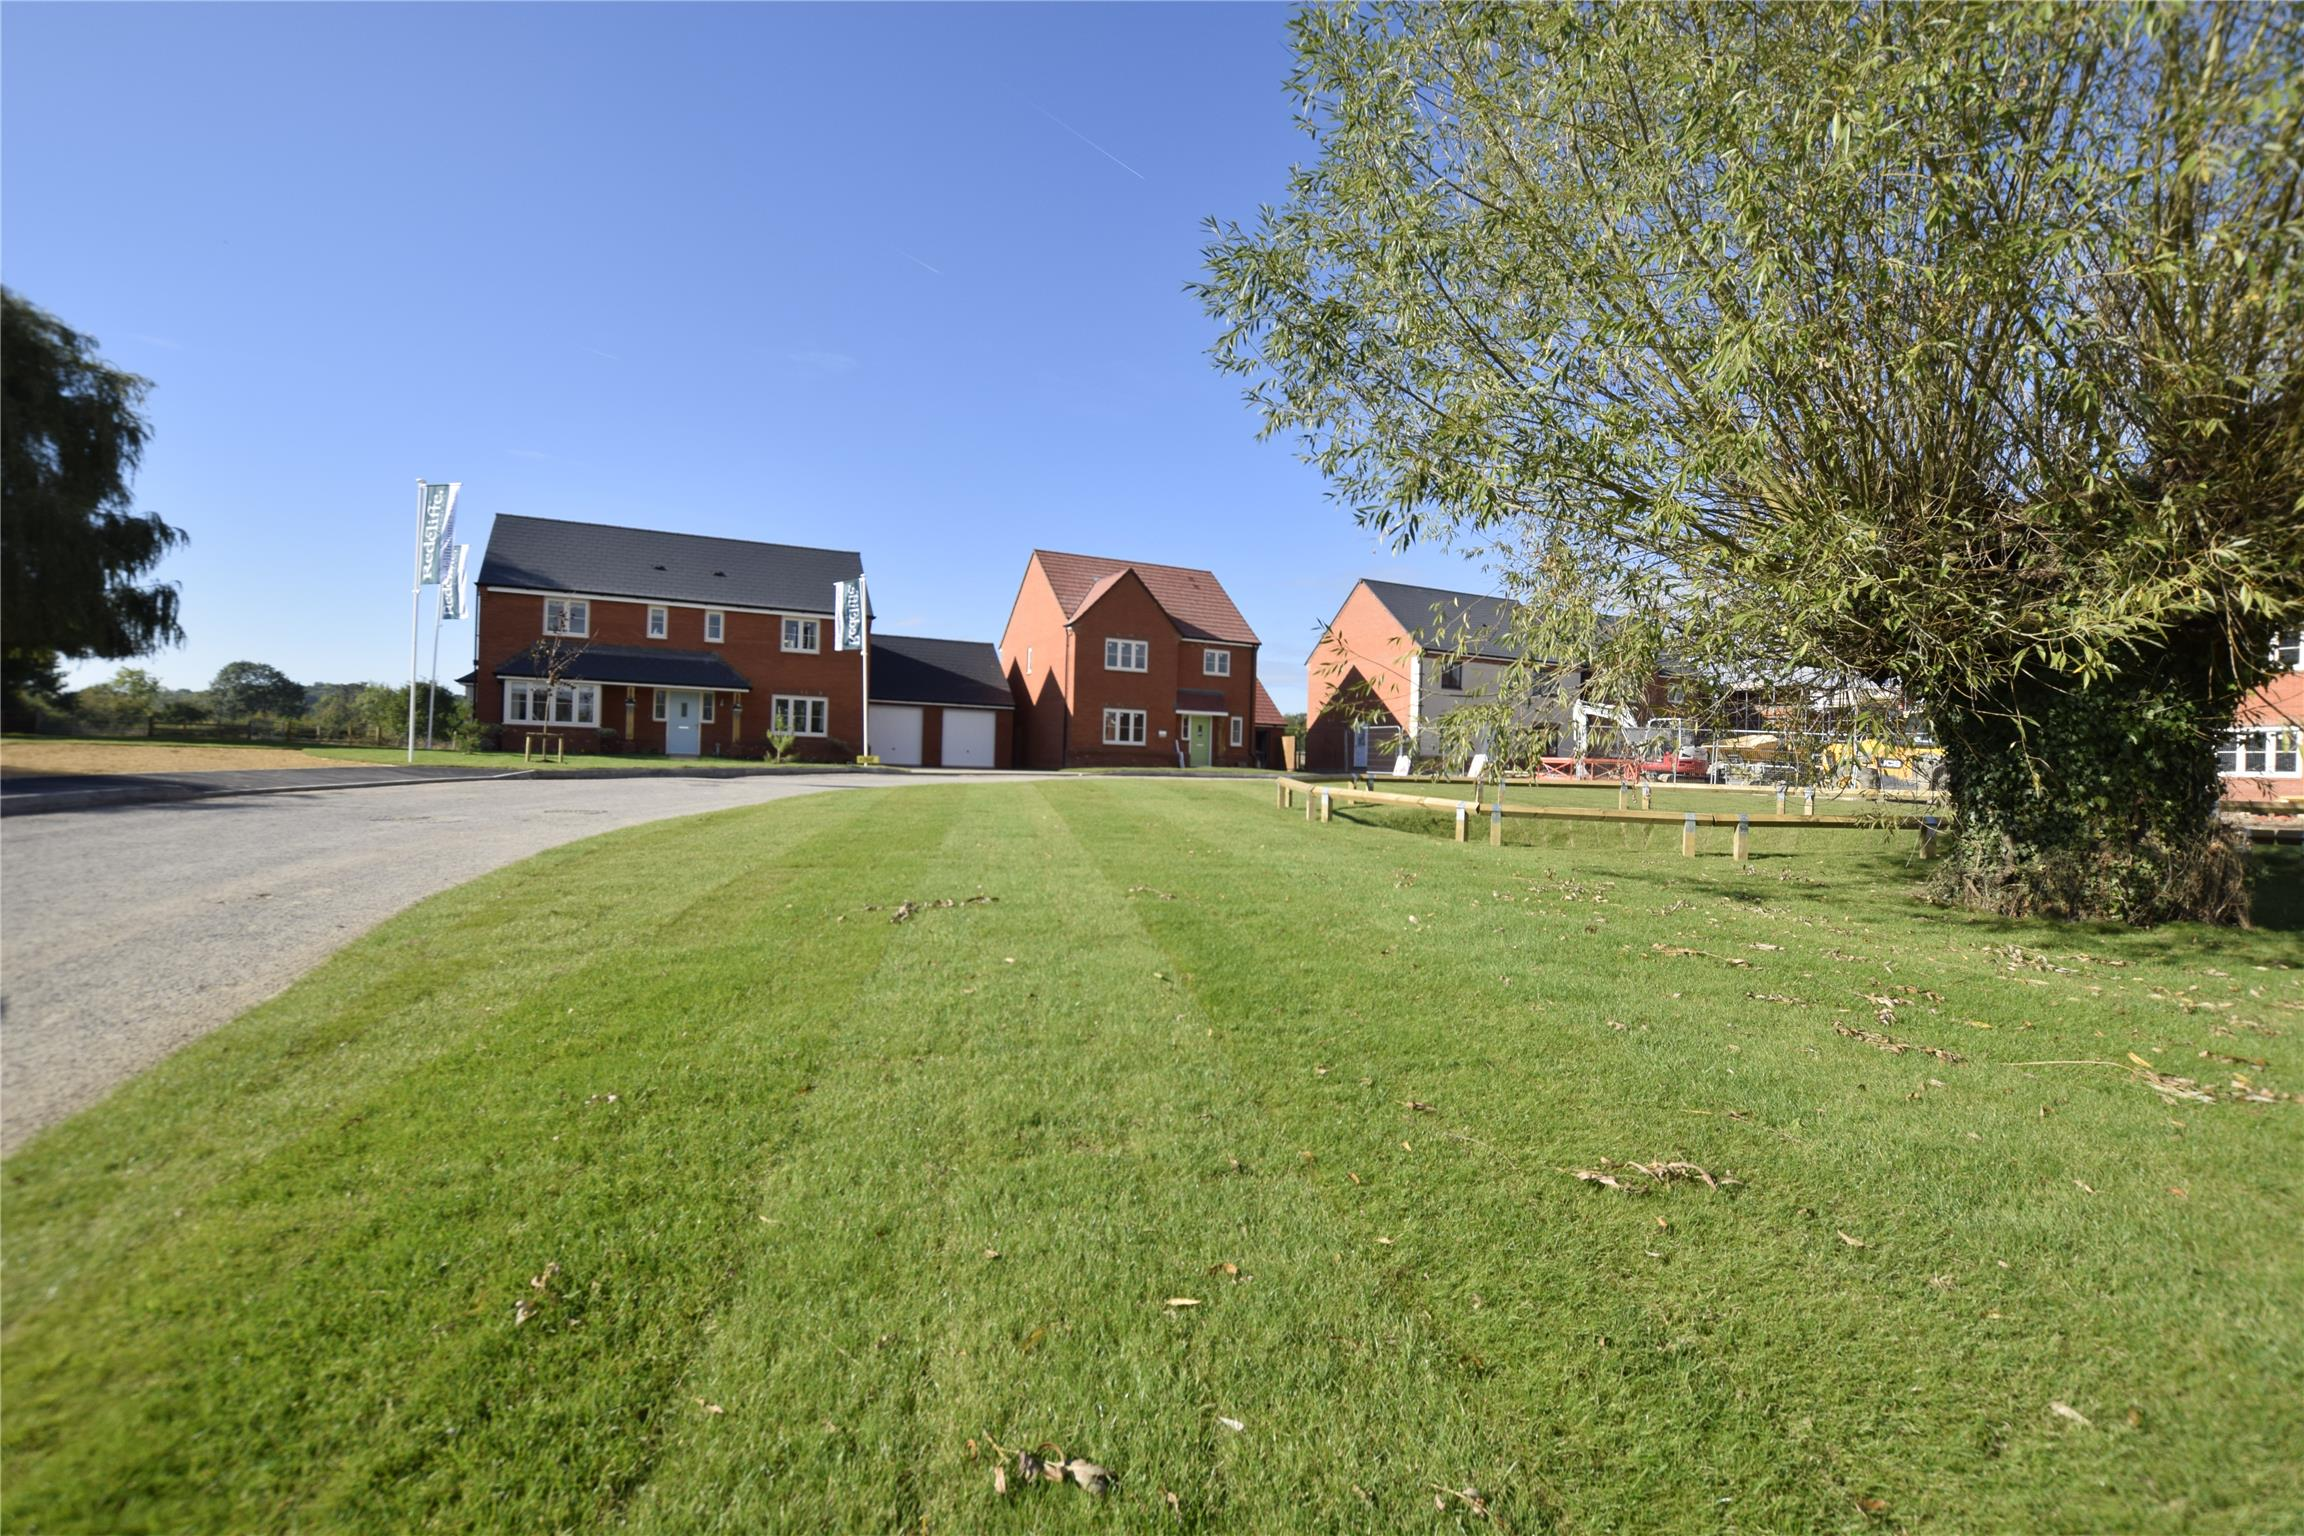 Plot 26, The Ashbury, Nup End Green, Ashleworth, Glos GL19